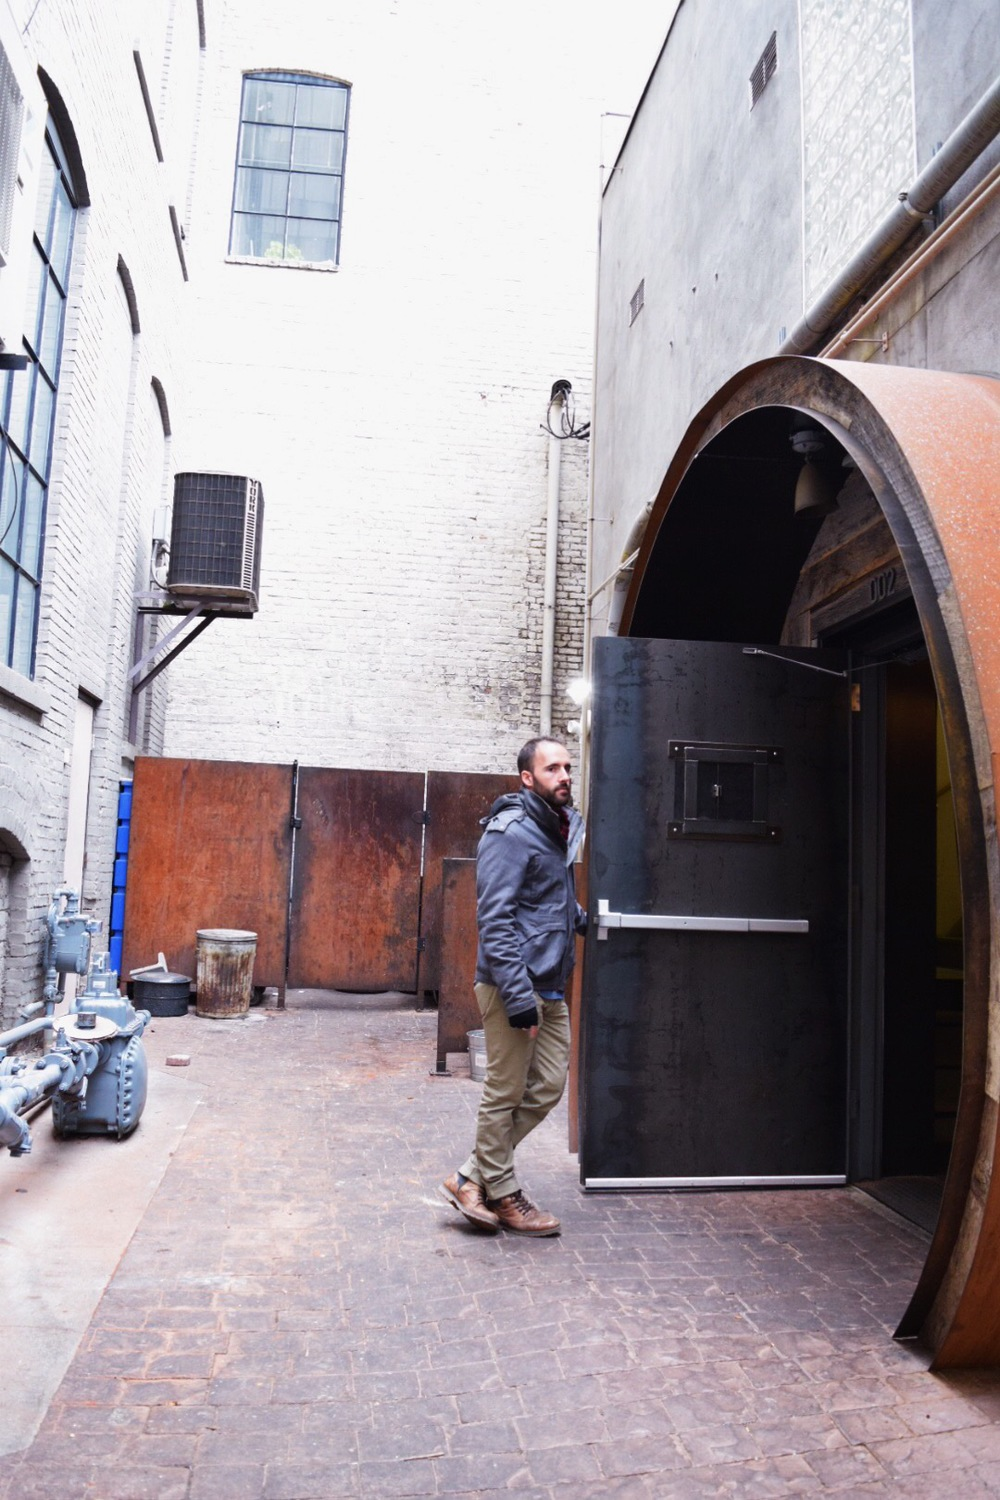 The entrance is right off Patton Ave and takes you down a staircase to the dimly-litbrewery.